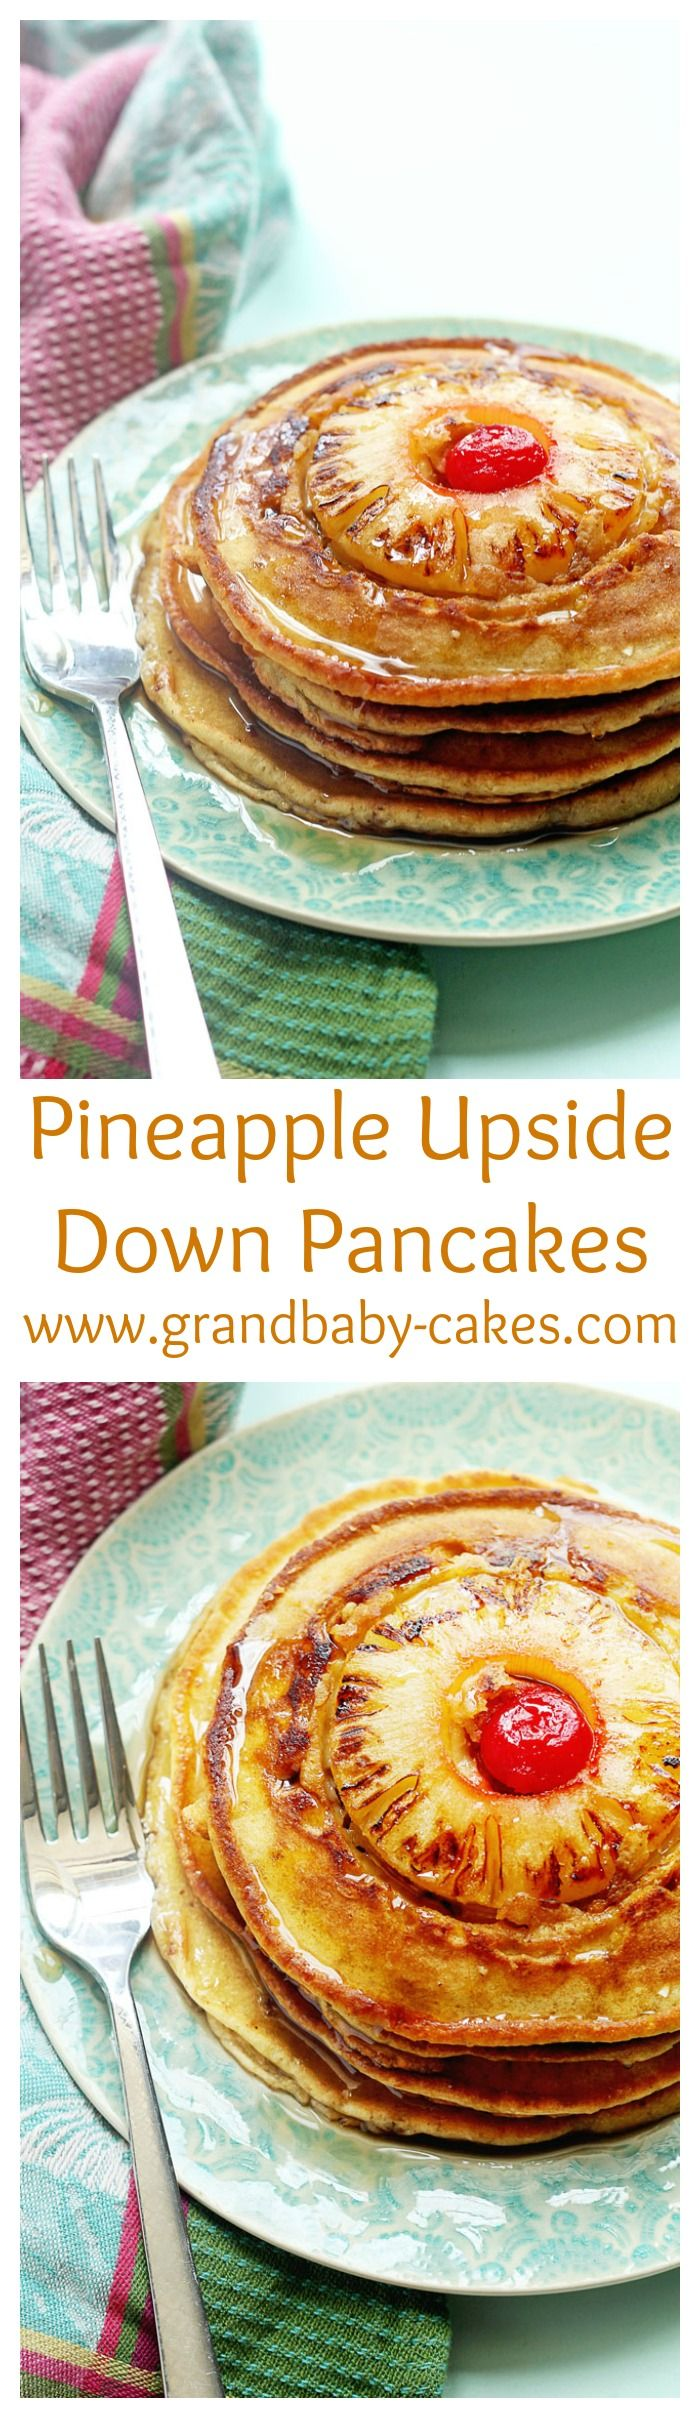 Delicious Pineapple Upside Down Pancakes! Enjoy the classic cake for BREAKFAST instead!